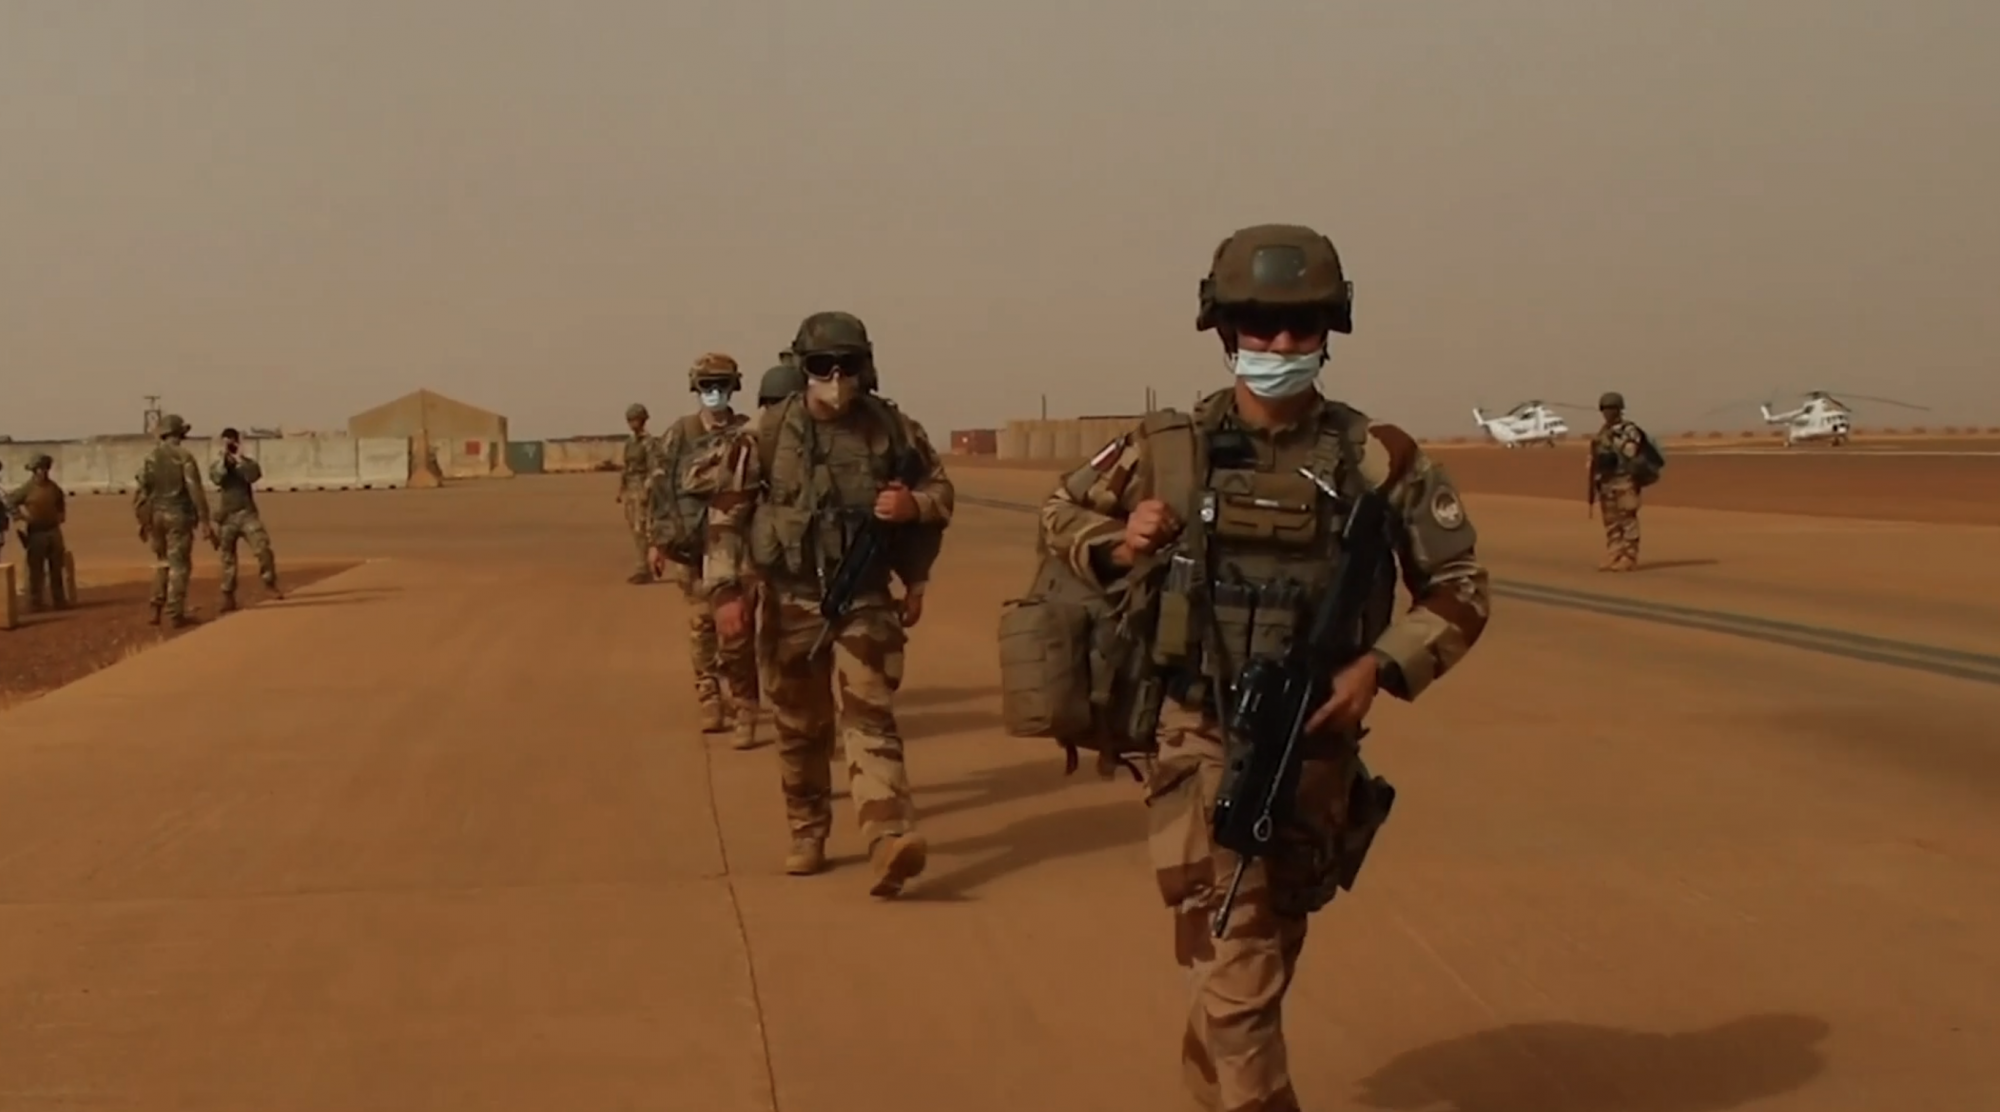 Mali accuses France of abandoning country by reducing troops fighting jihadists - channel 4